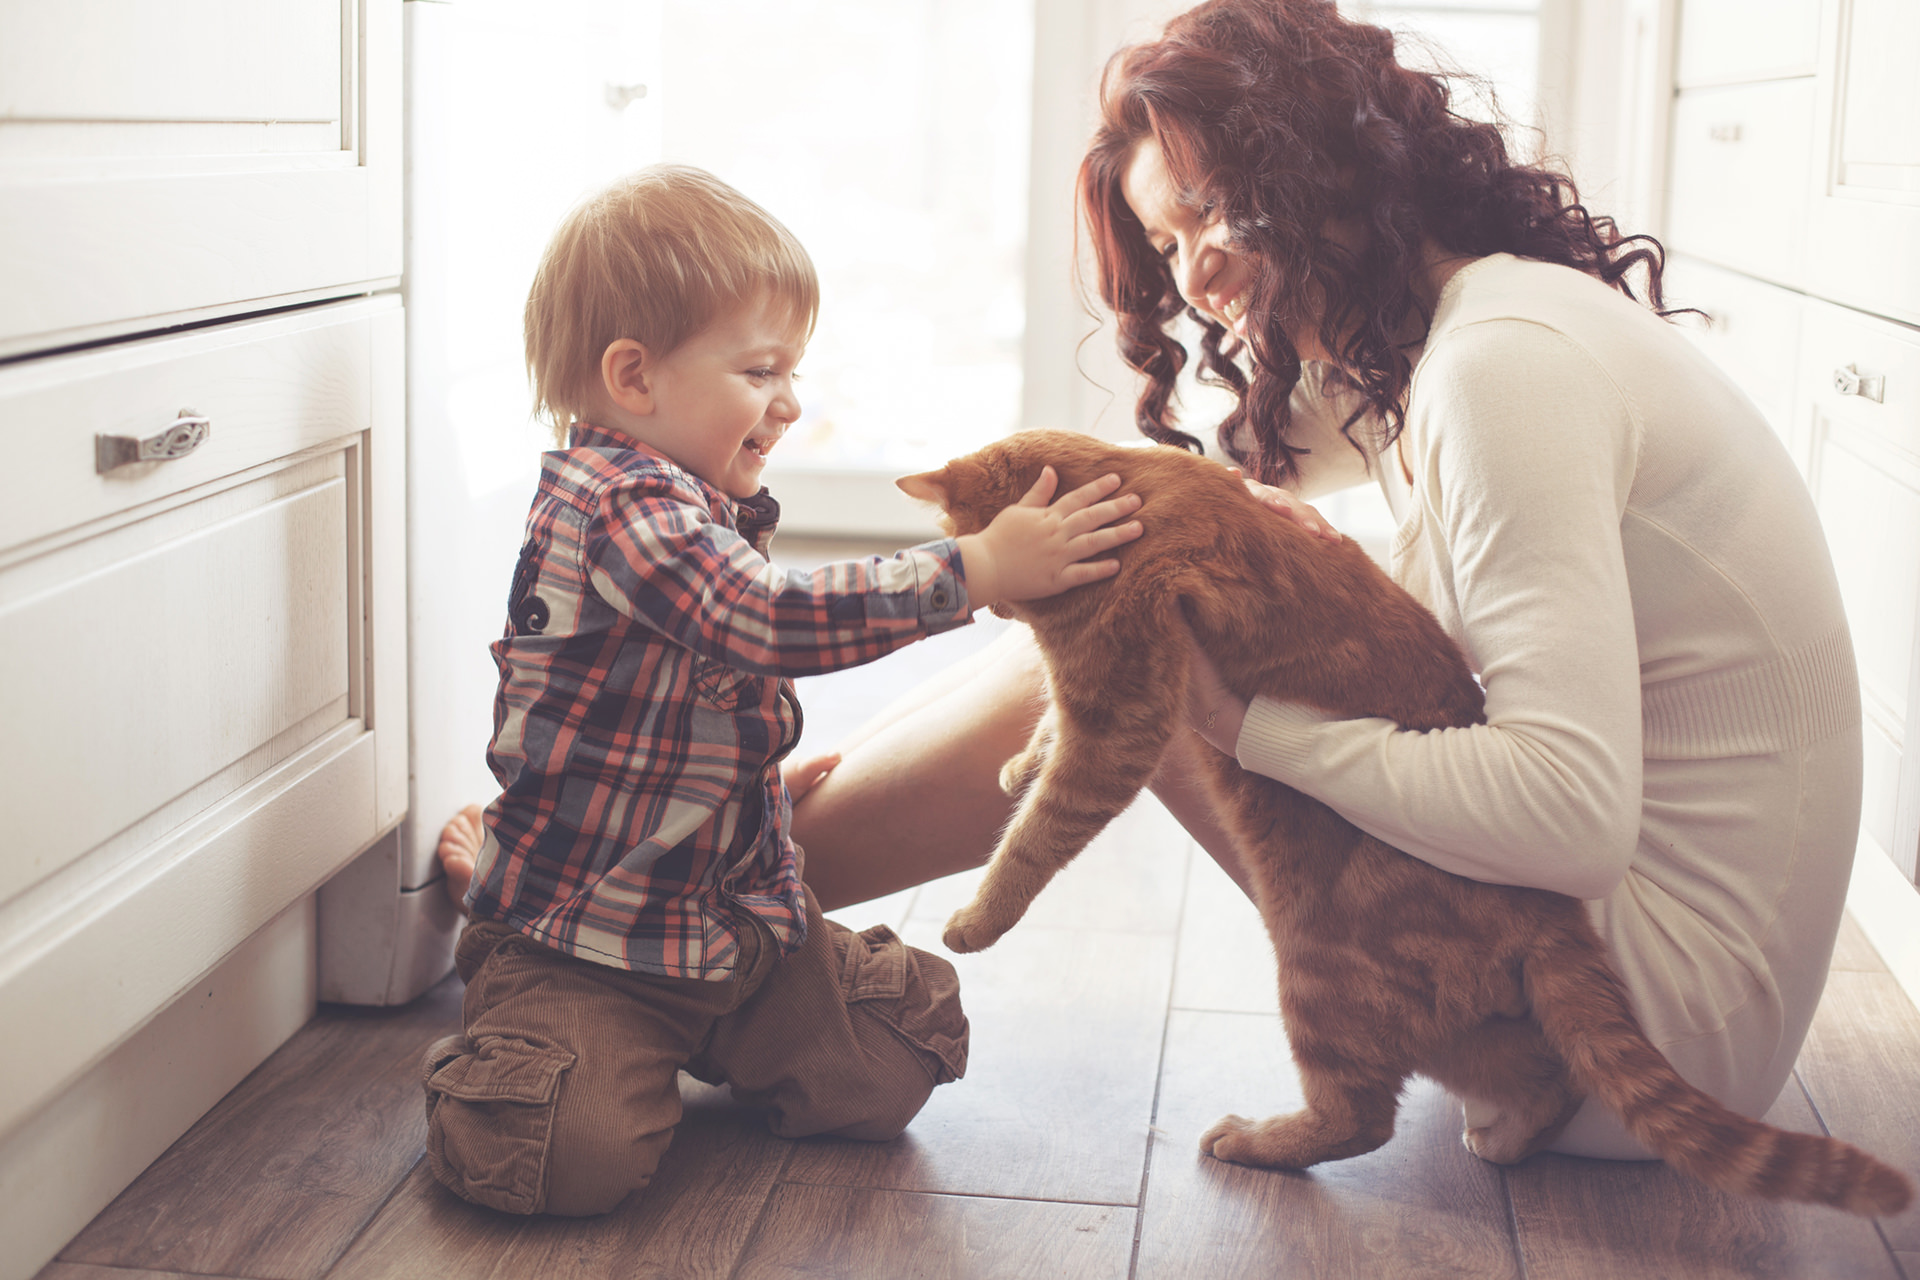 Caretaker and child playing with cat